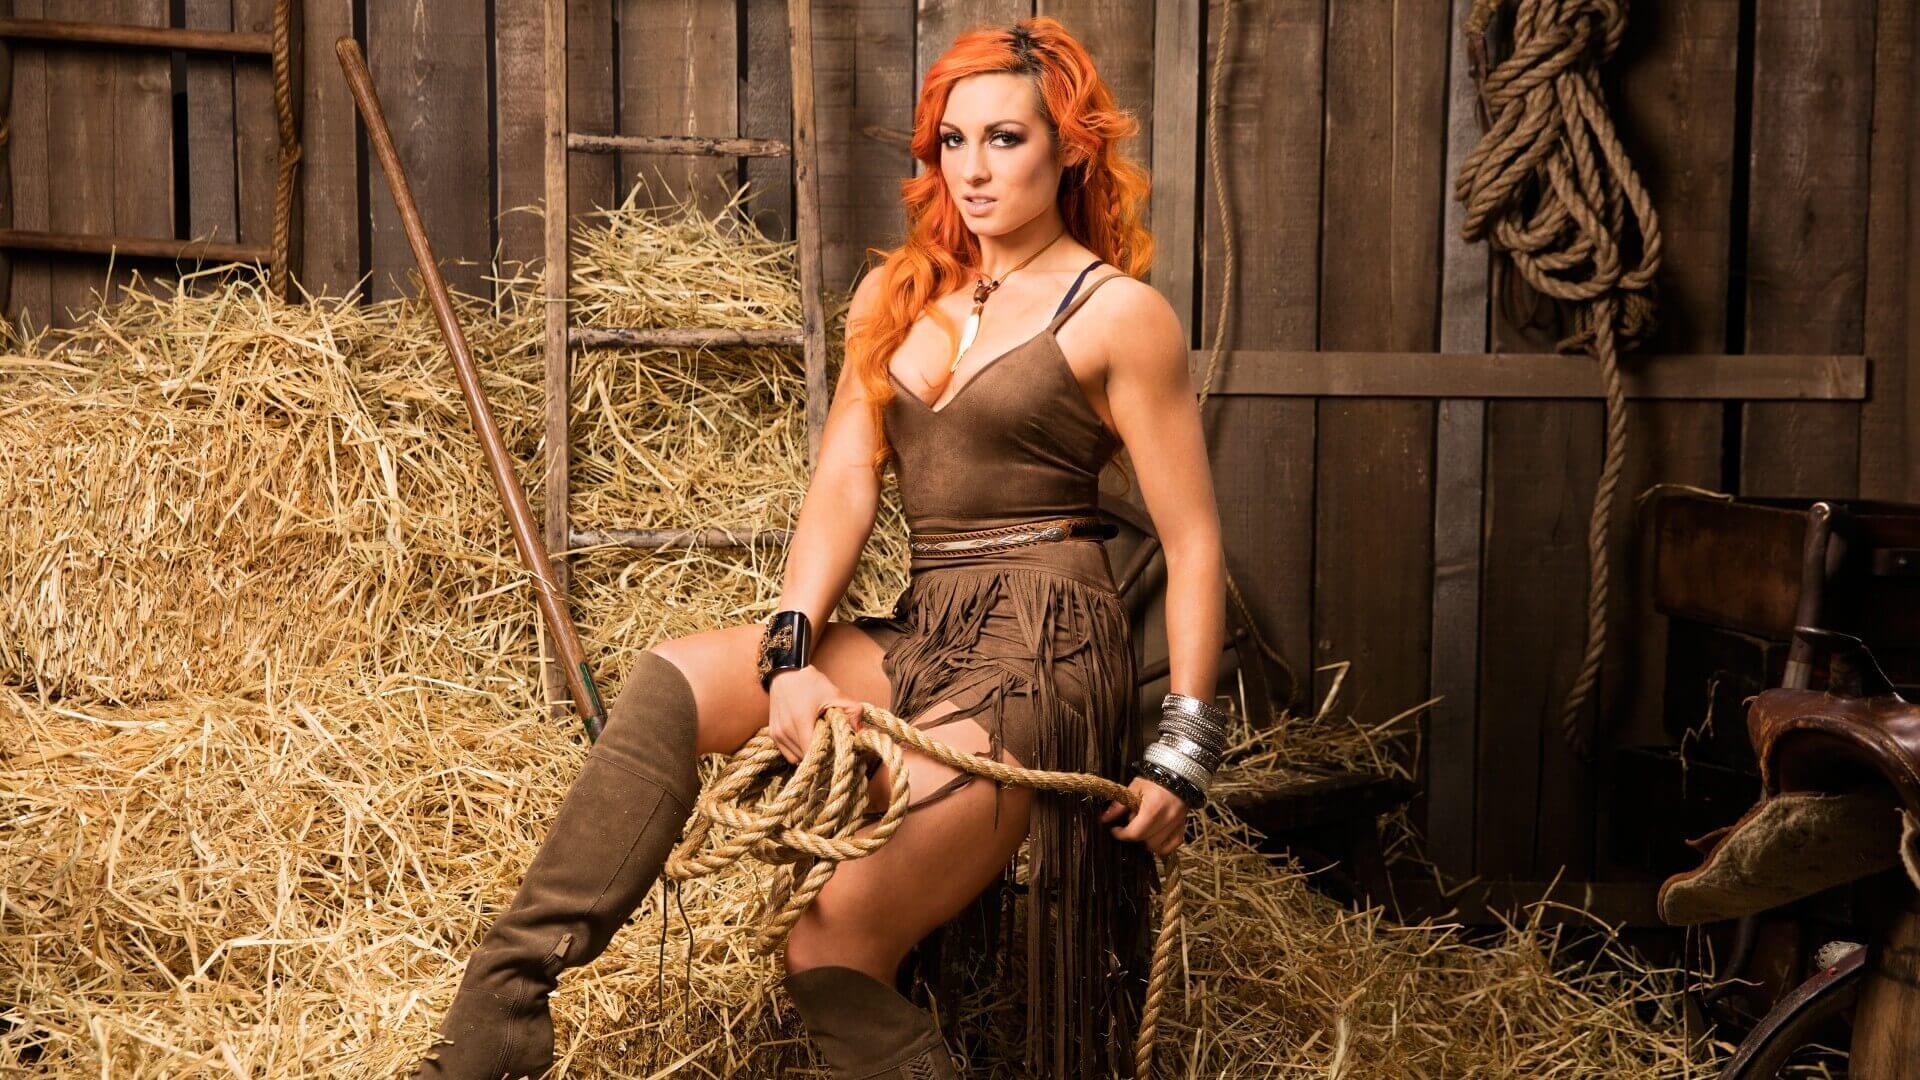 becky lynch awesome photos